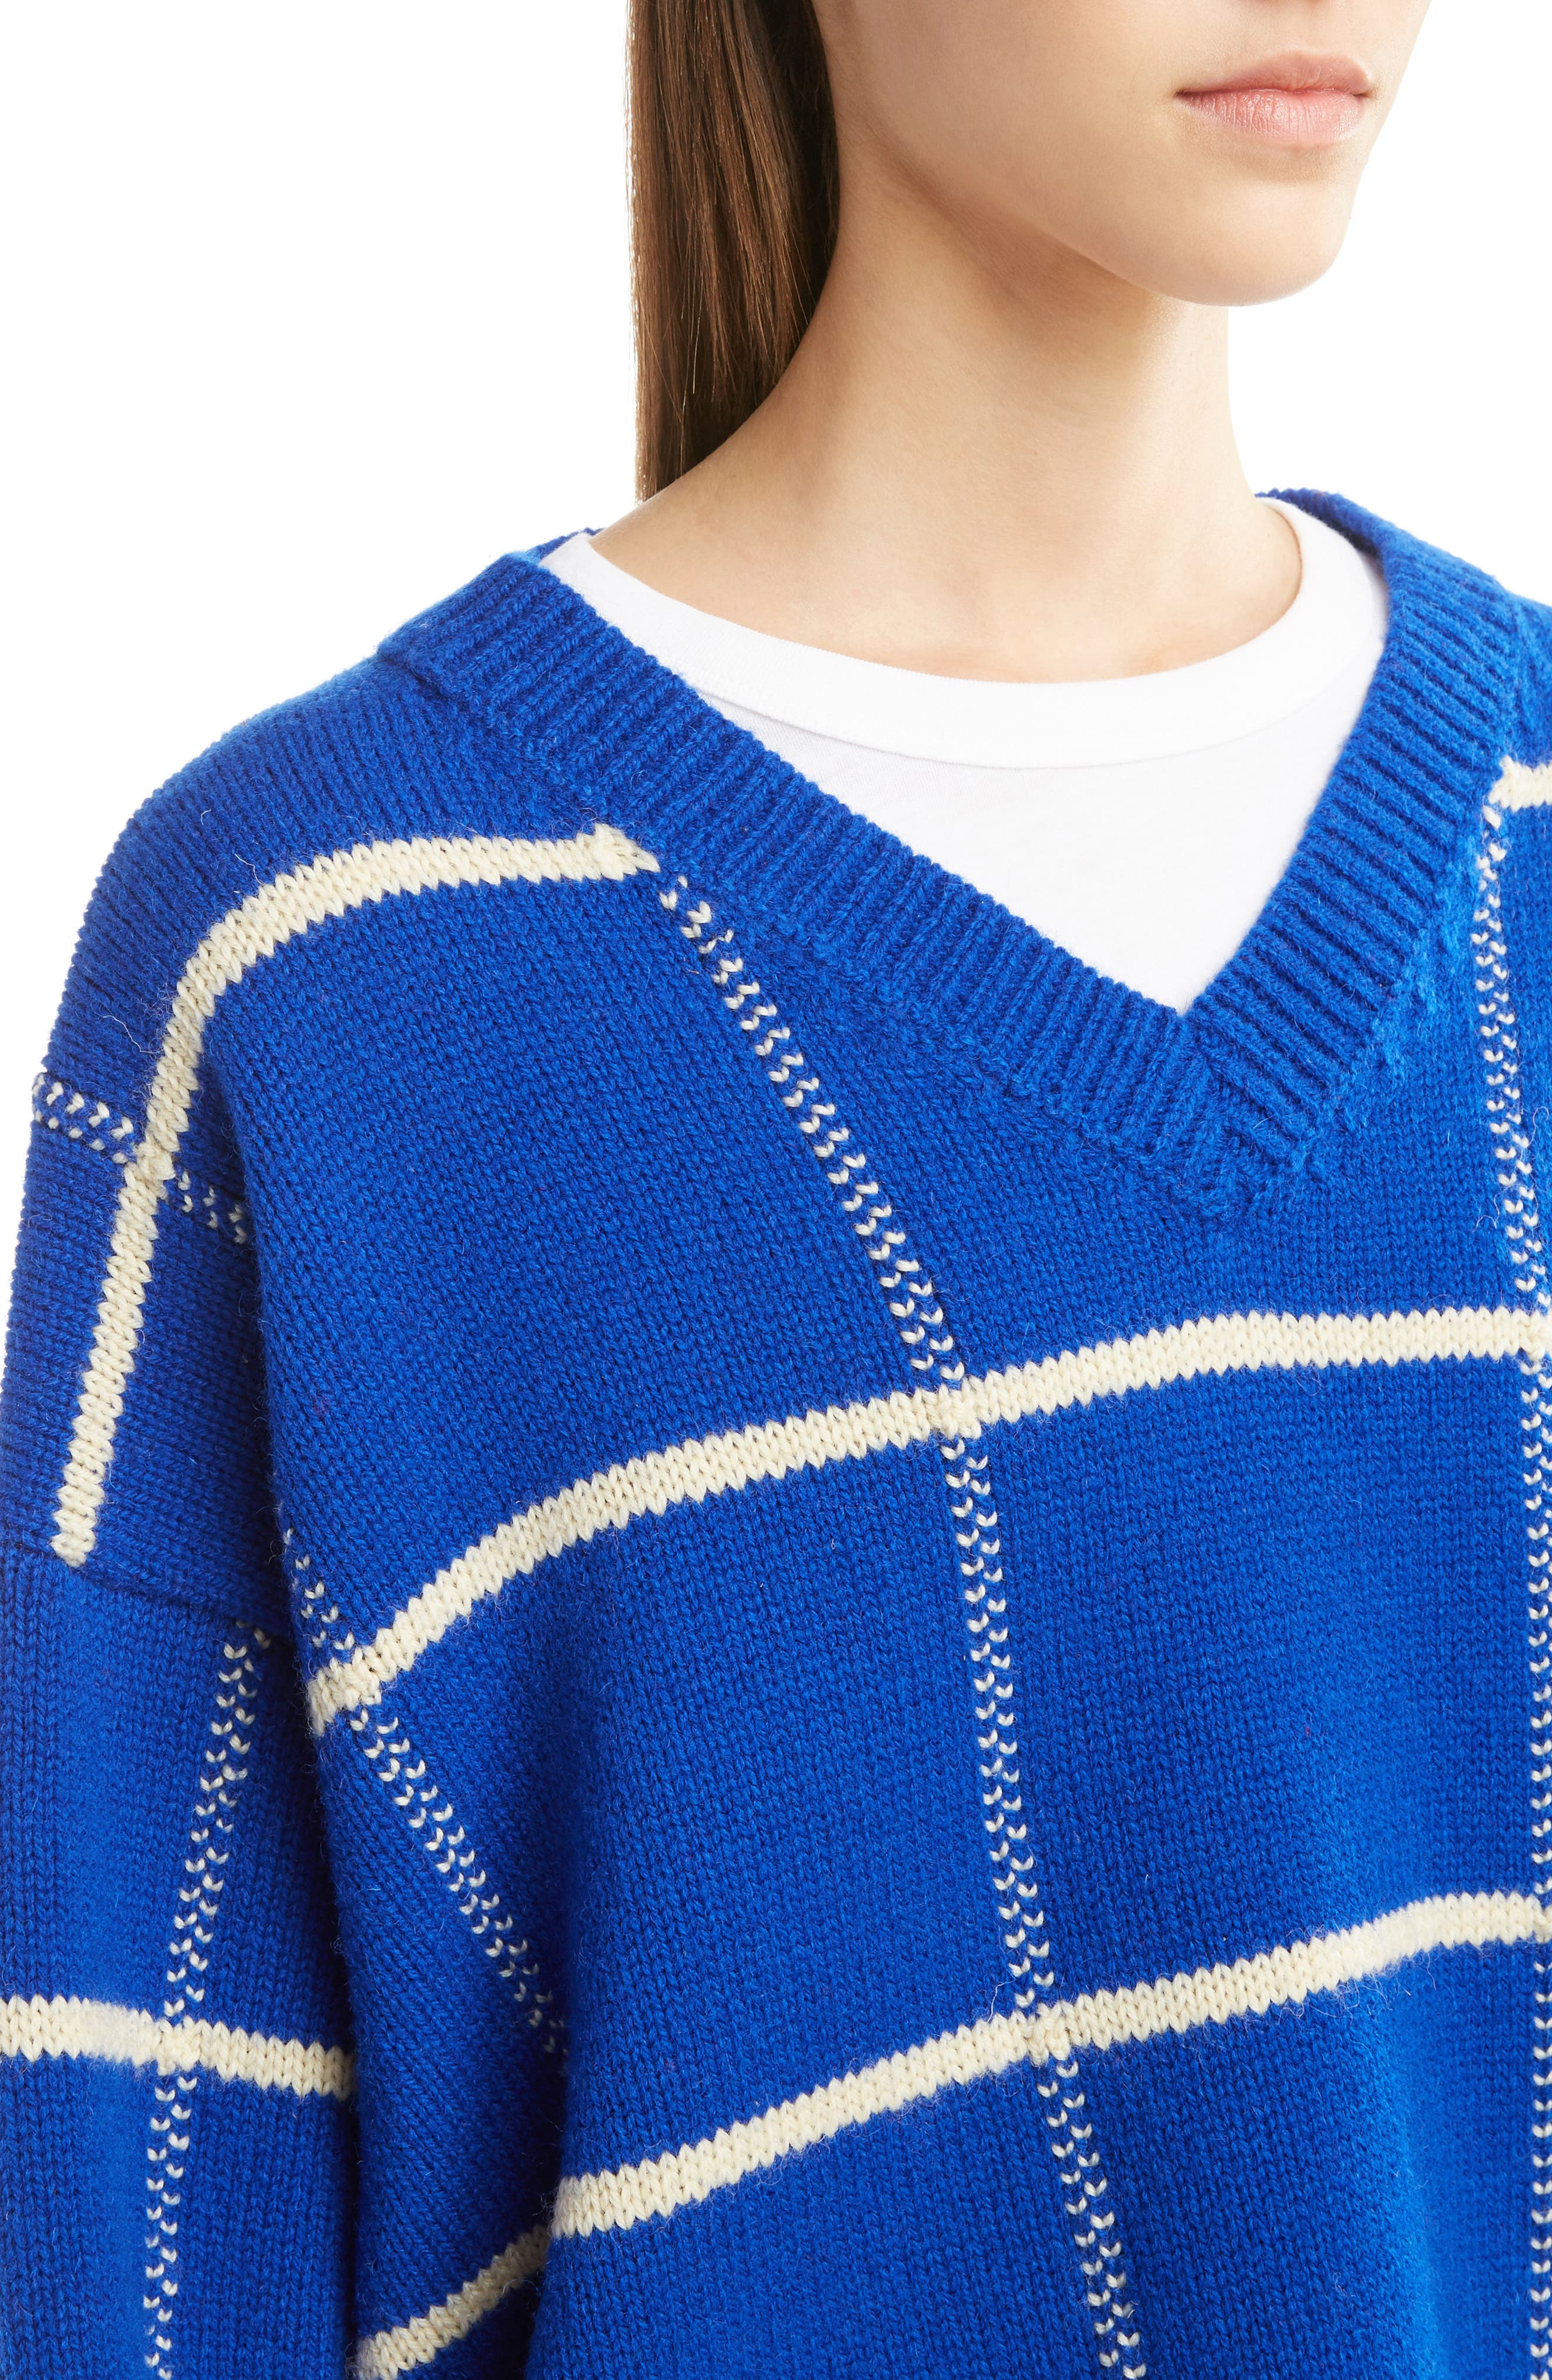 Windowpane Knit Wool Sweater,                             Alternate thumbnail 7, color,